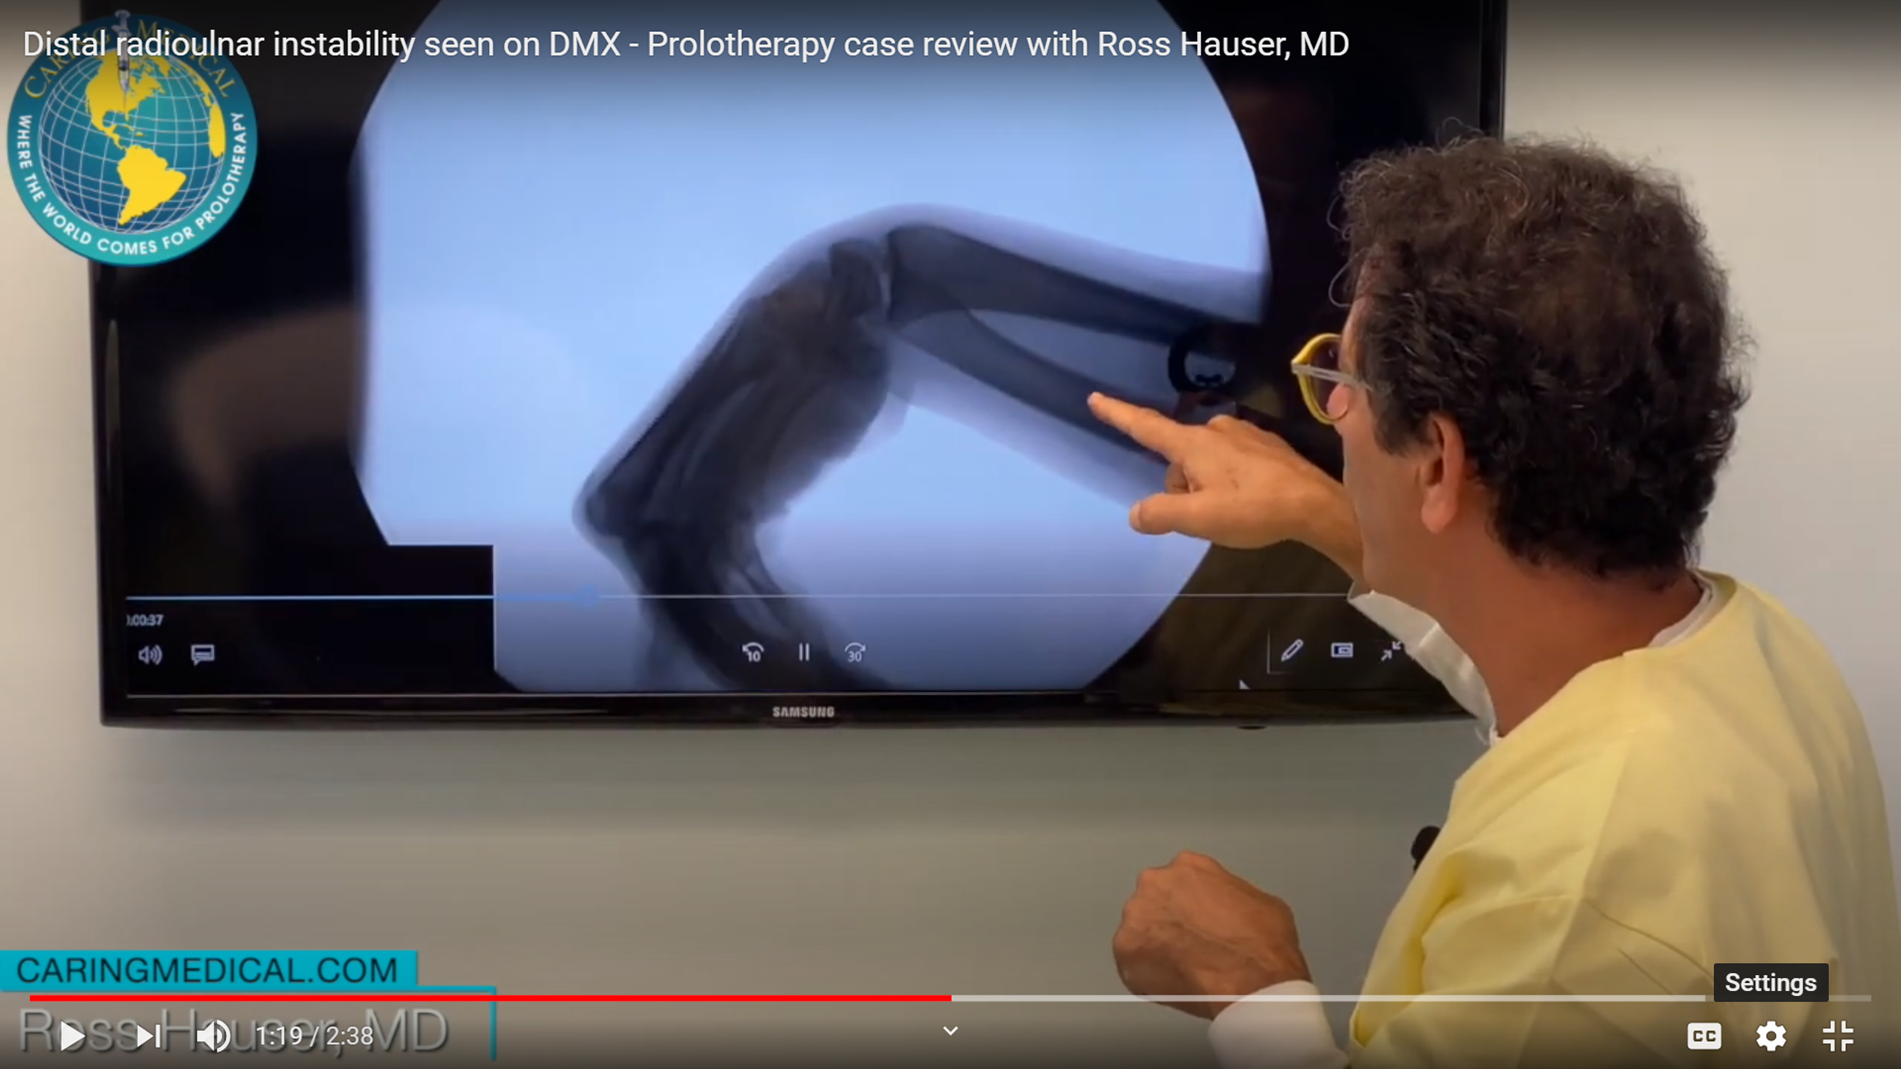 """In this still image from the video, Dr. Hauser demonstrates the abnormal separation of the ulna and radius bones caused by instability at the wrist's distal radioulnar joint. The hand is in """"flexion,"""" the fingers point towards the ground."""